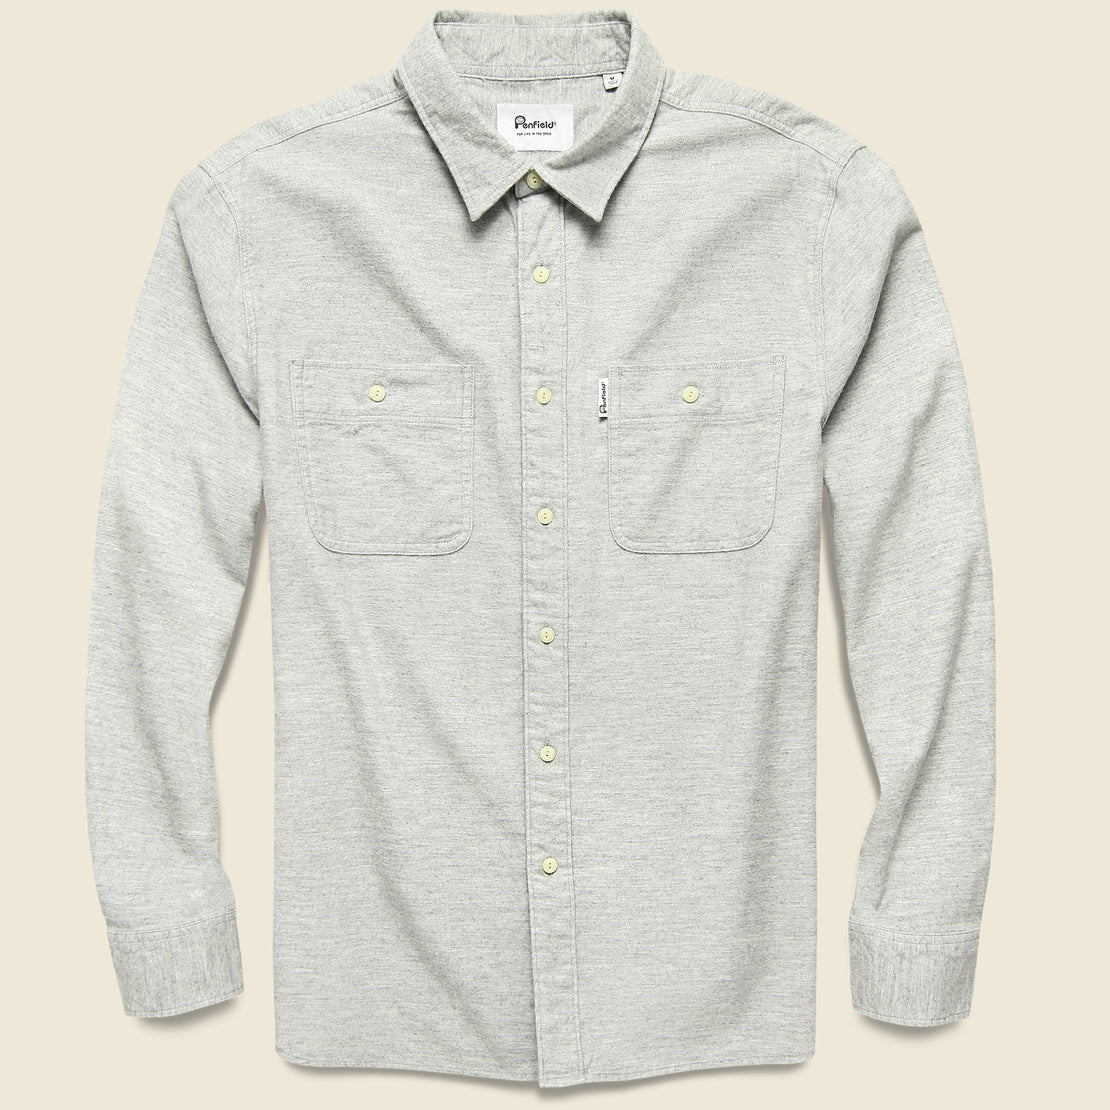 Penfield Blackmer Heather Shirt - Grey Marl